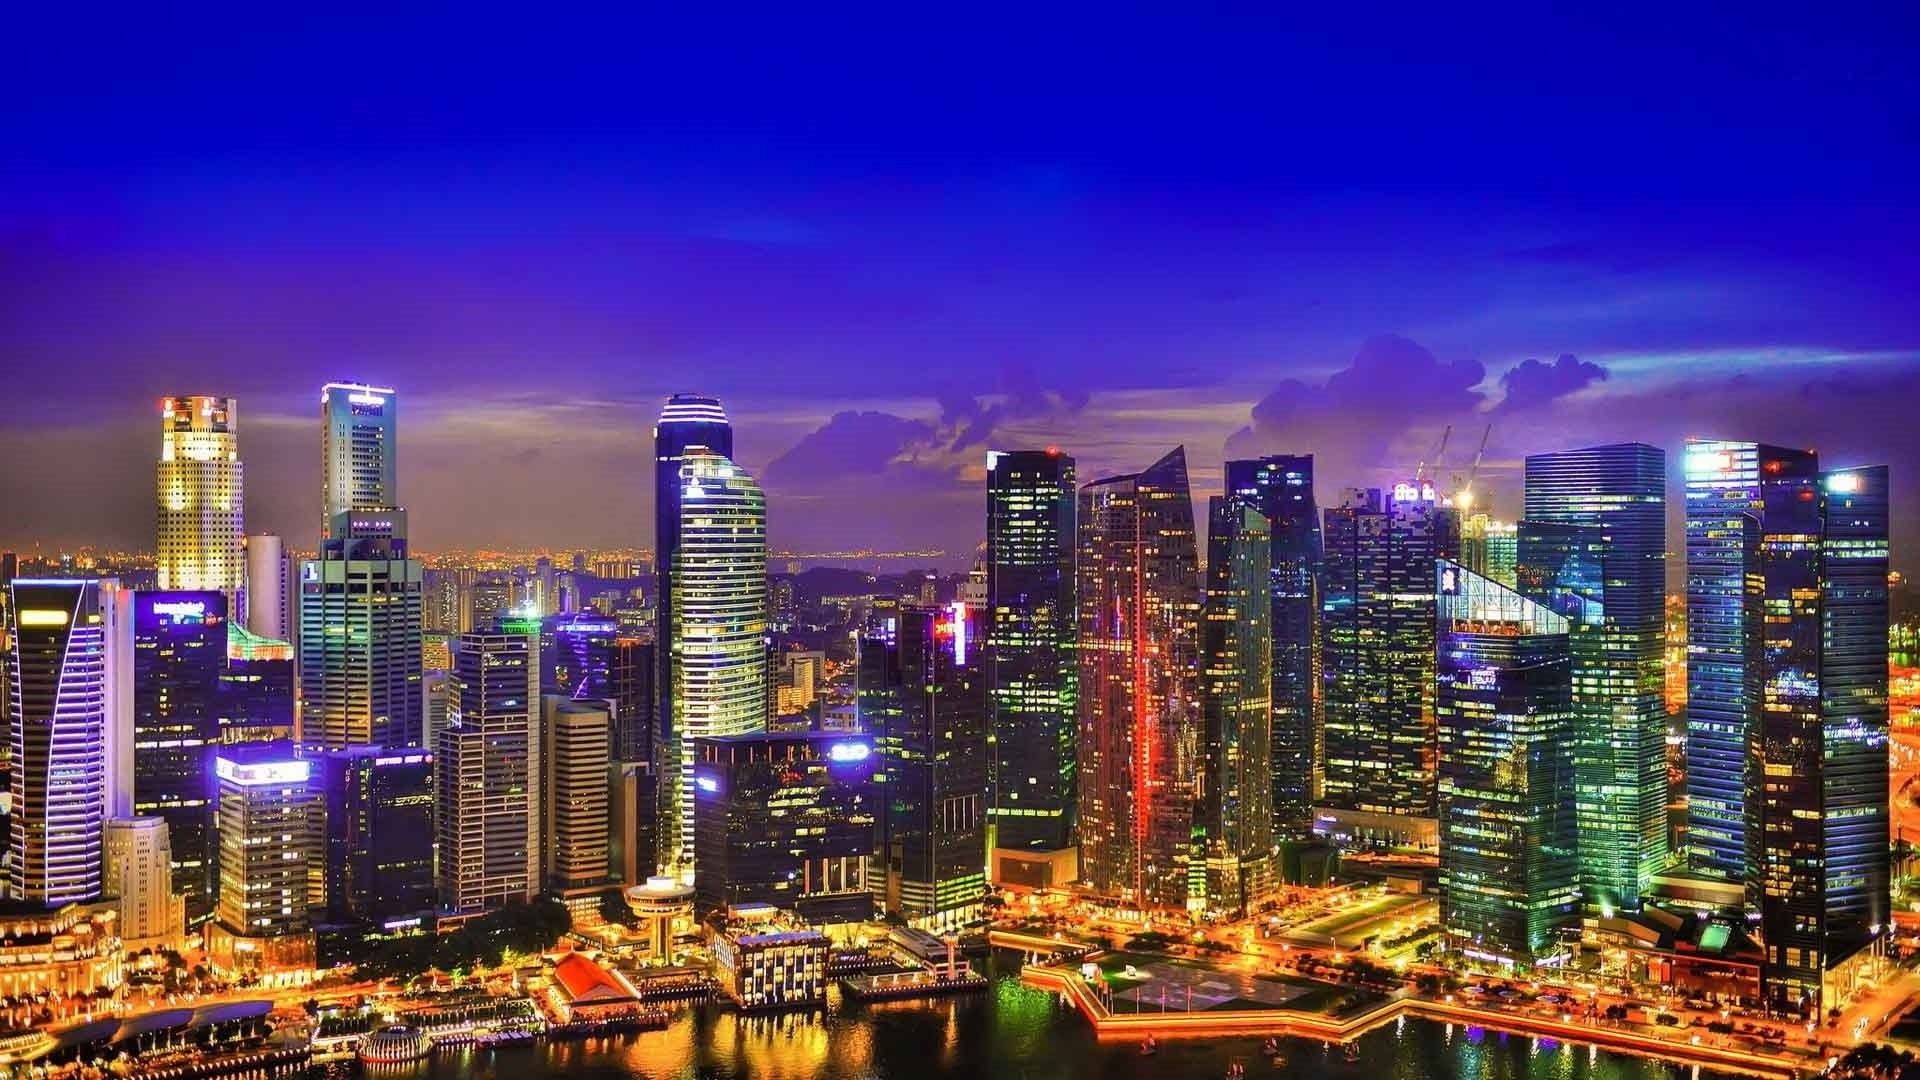 Cool City Wallpapers – city awesome singapore at night wallpaper cool pc  singapore city hd wallpaper